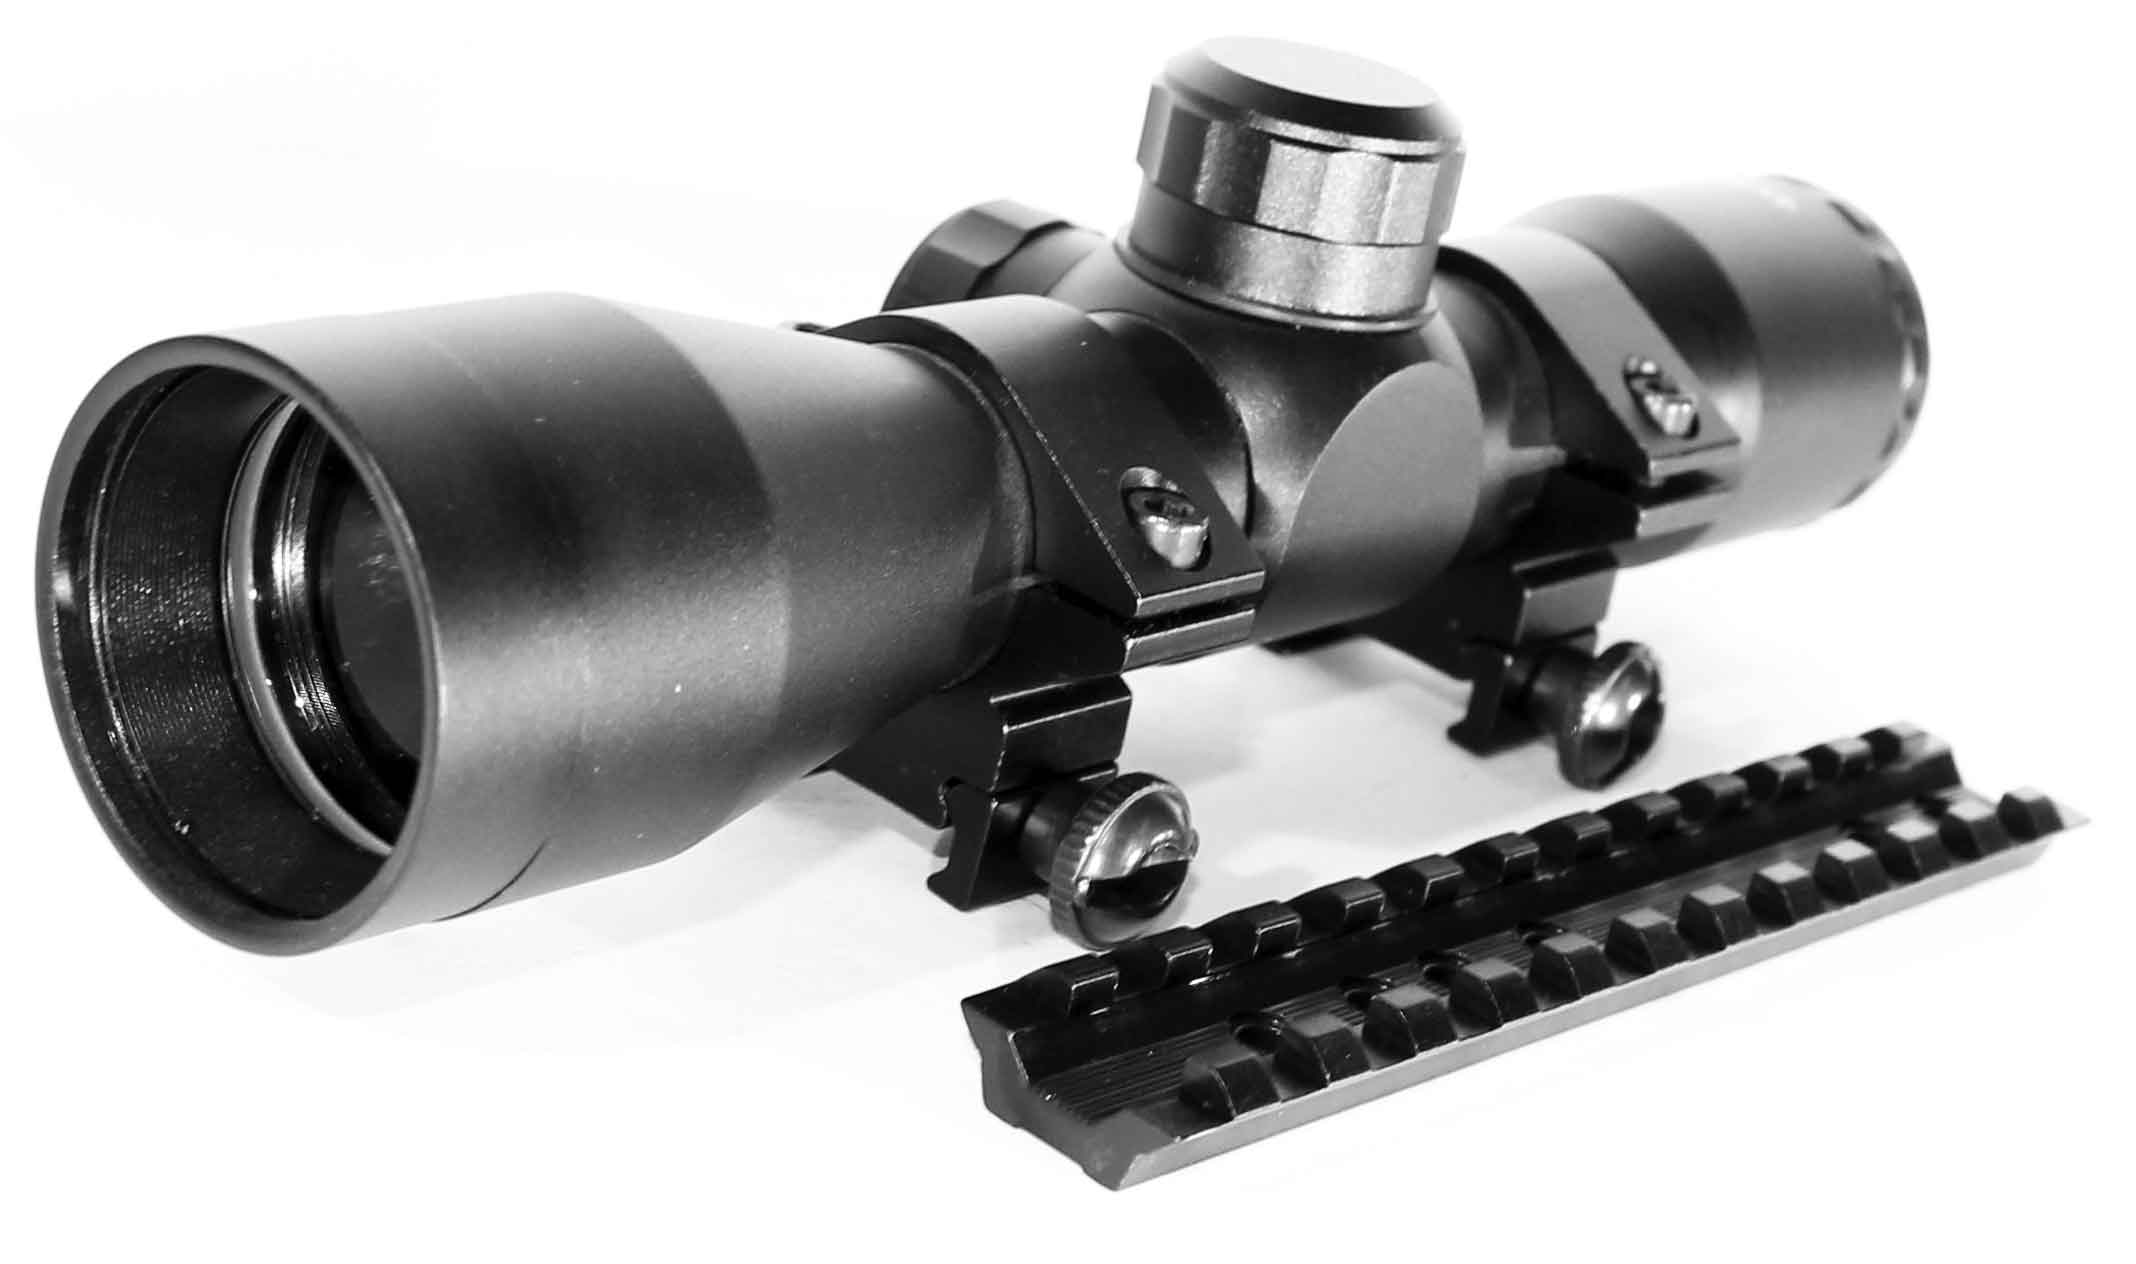 Hunting scope mildot reticle with Scope Base Mount For Marlin 336-Matte Black, single rail mount by